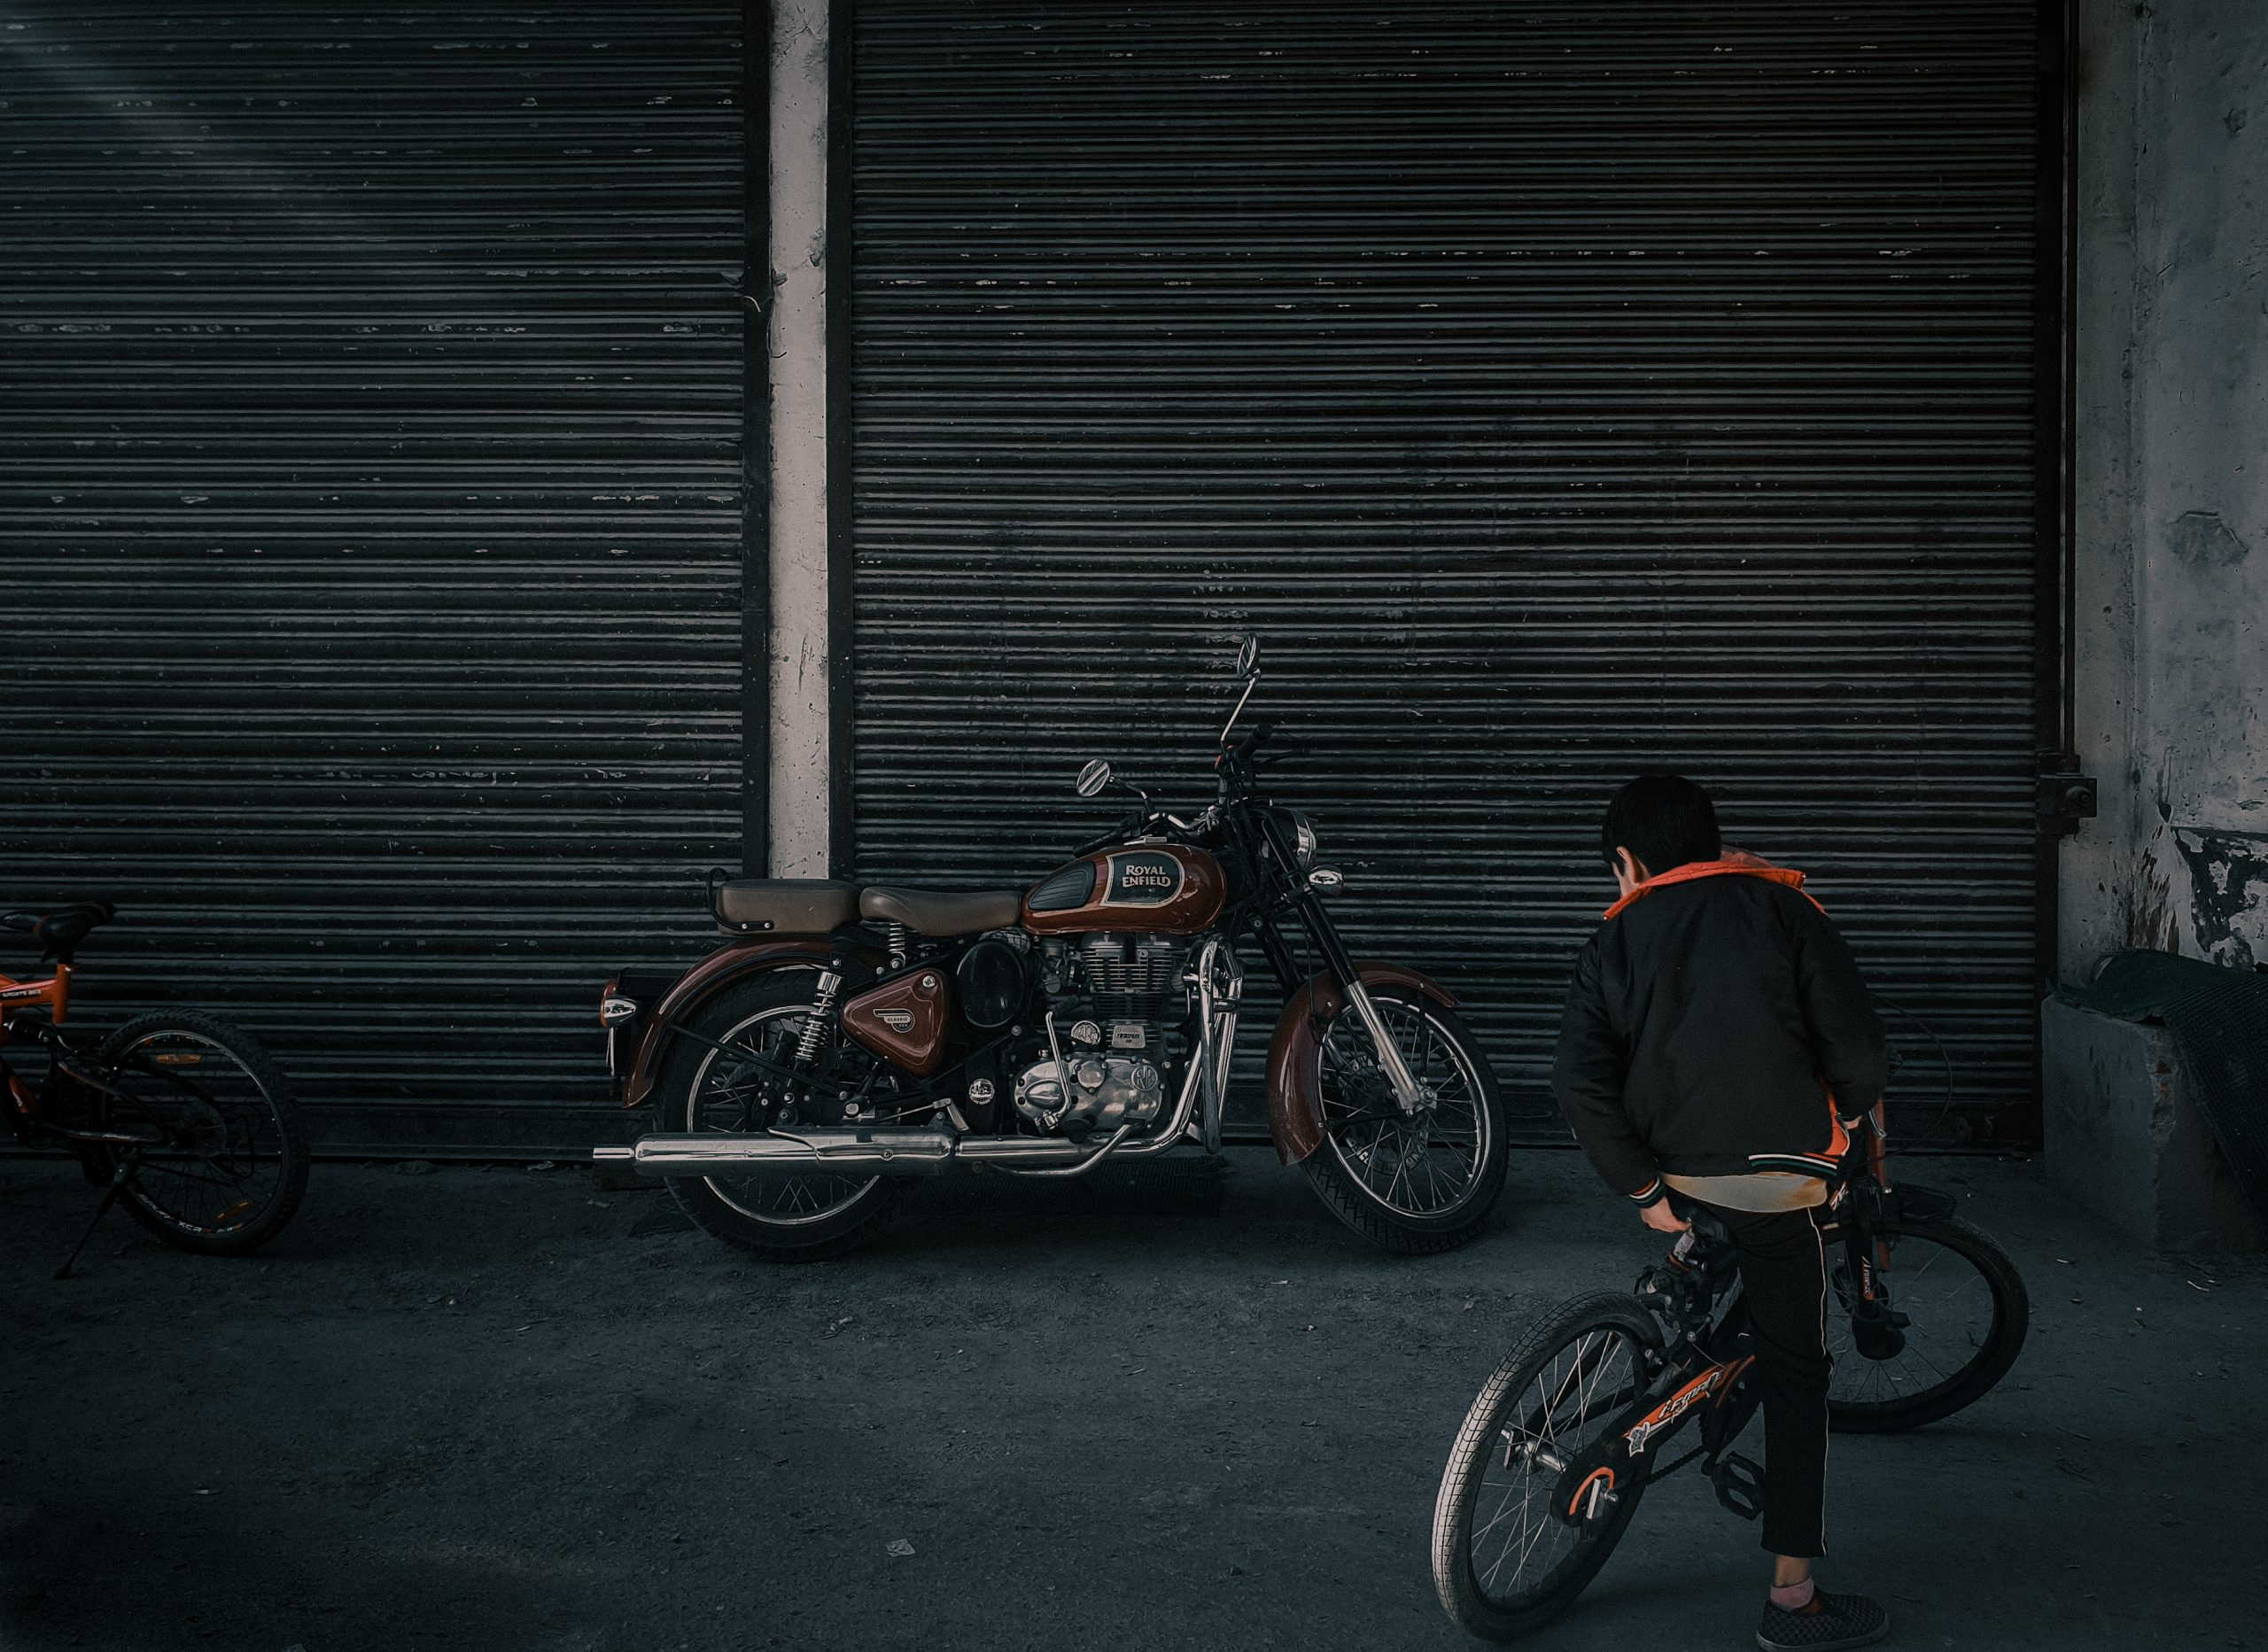 Parked Royal Enfield